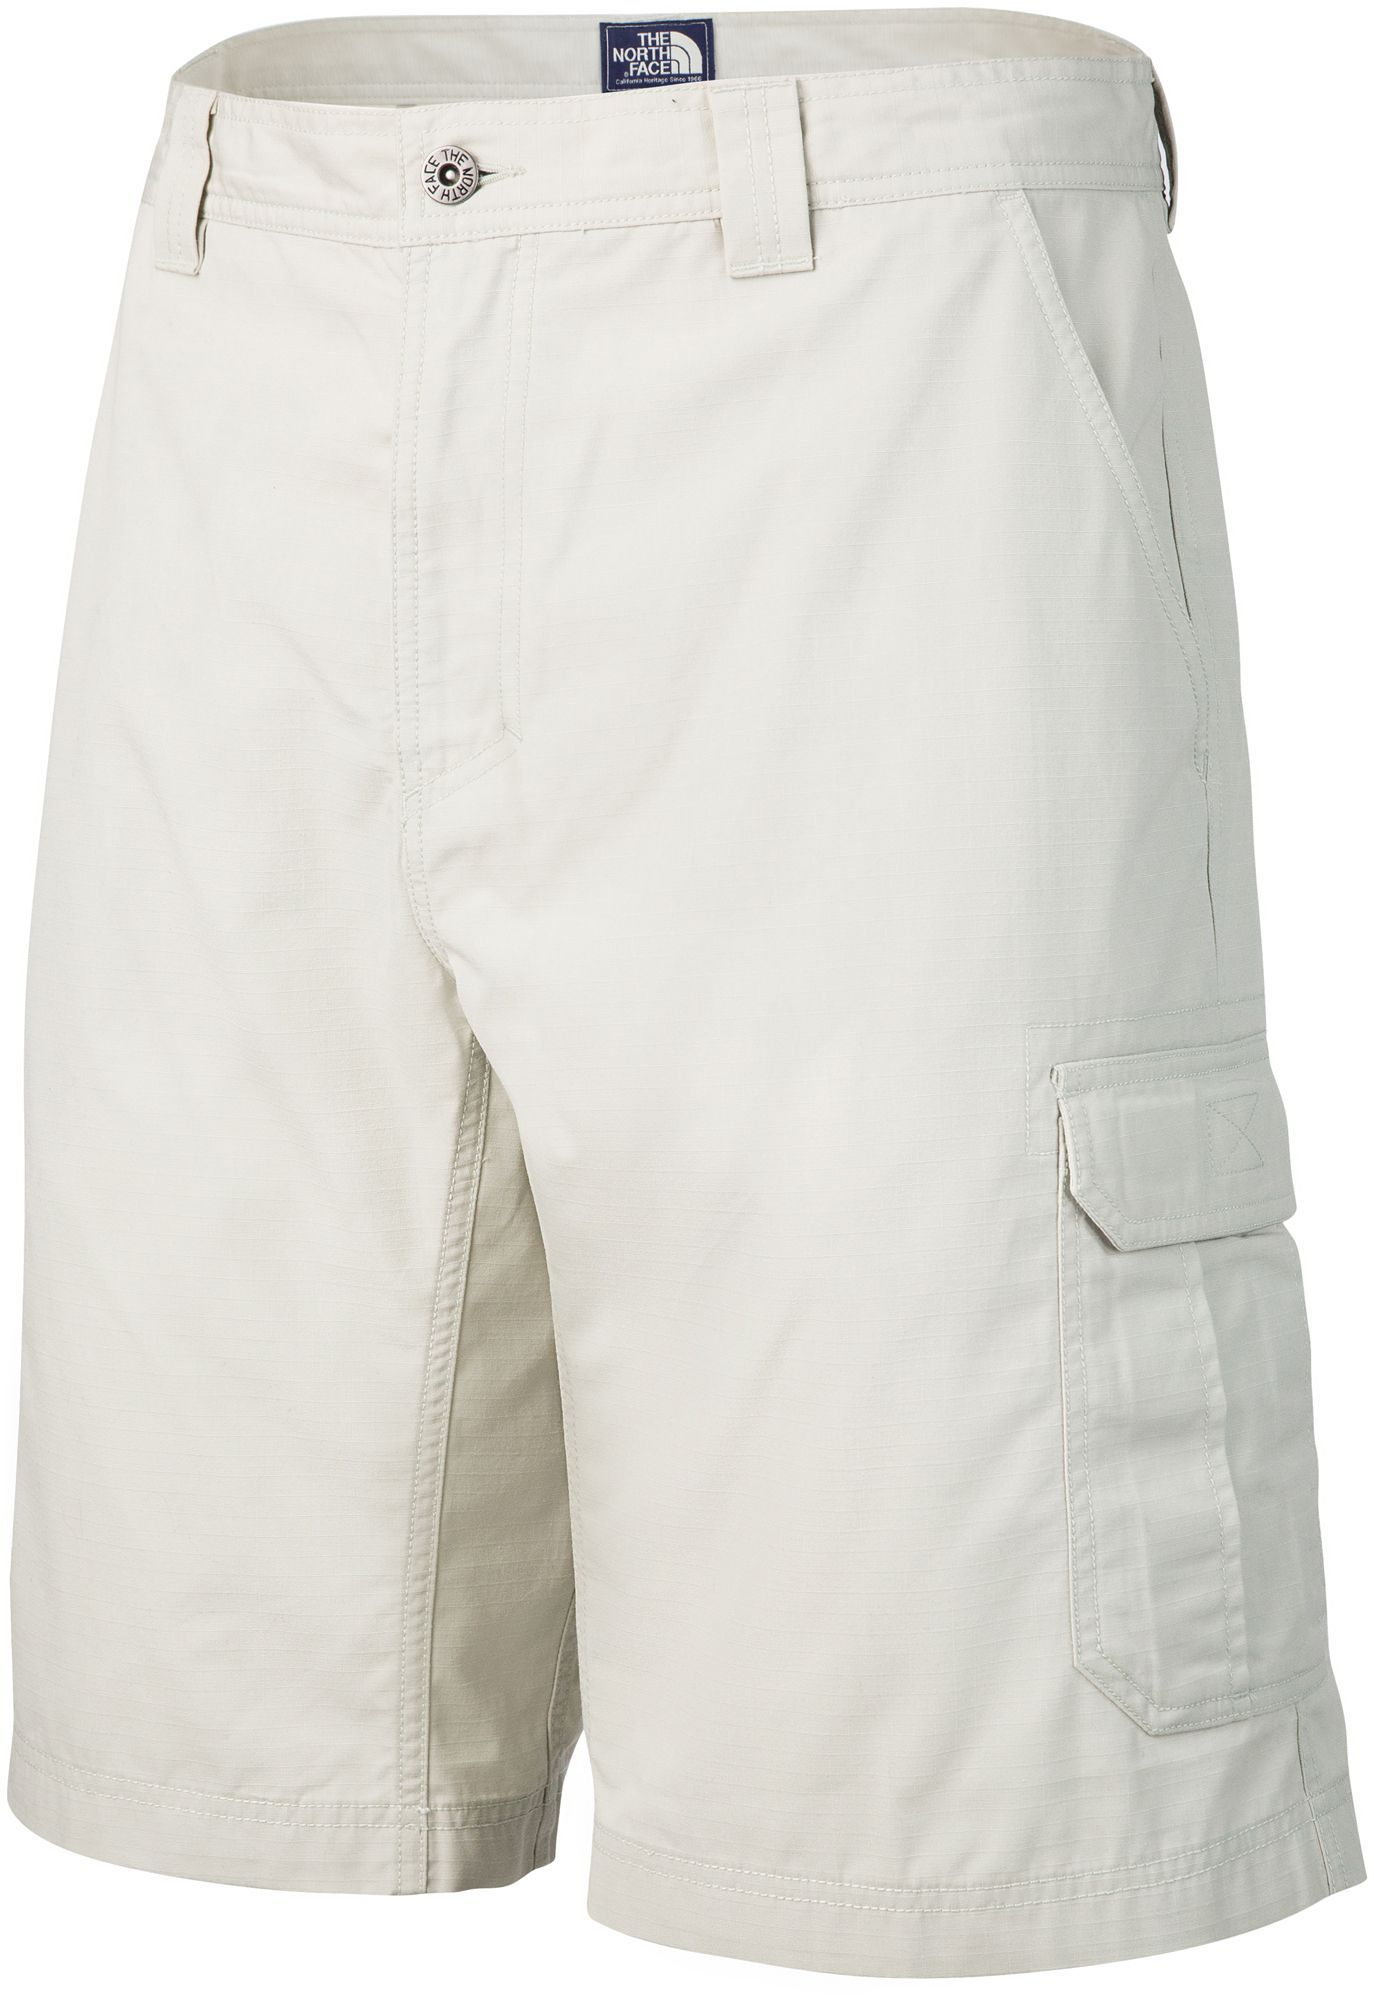 bfd98dda9d The North Face Men's Tribe Cargo Shorts | Products | The north face ...